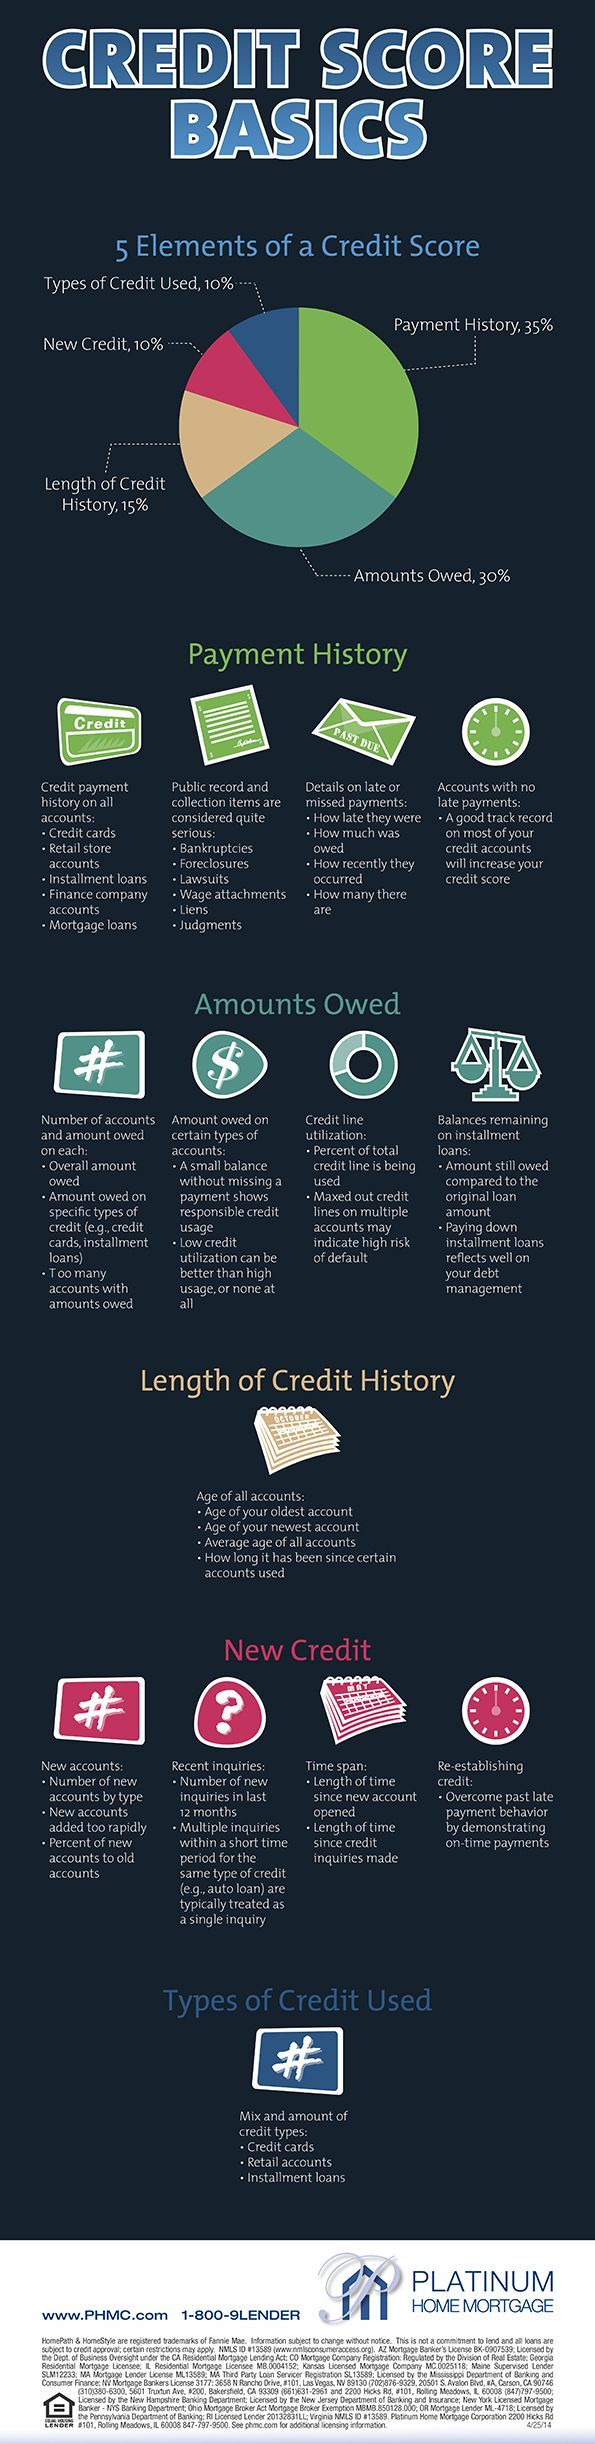 What credit scores consist of for a kentucky mortgage loan approval for a FHA, VA, KHC, USDA and Rural Housing loan in Kentucky for 2014 building credit, credit score